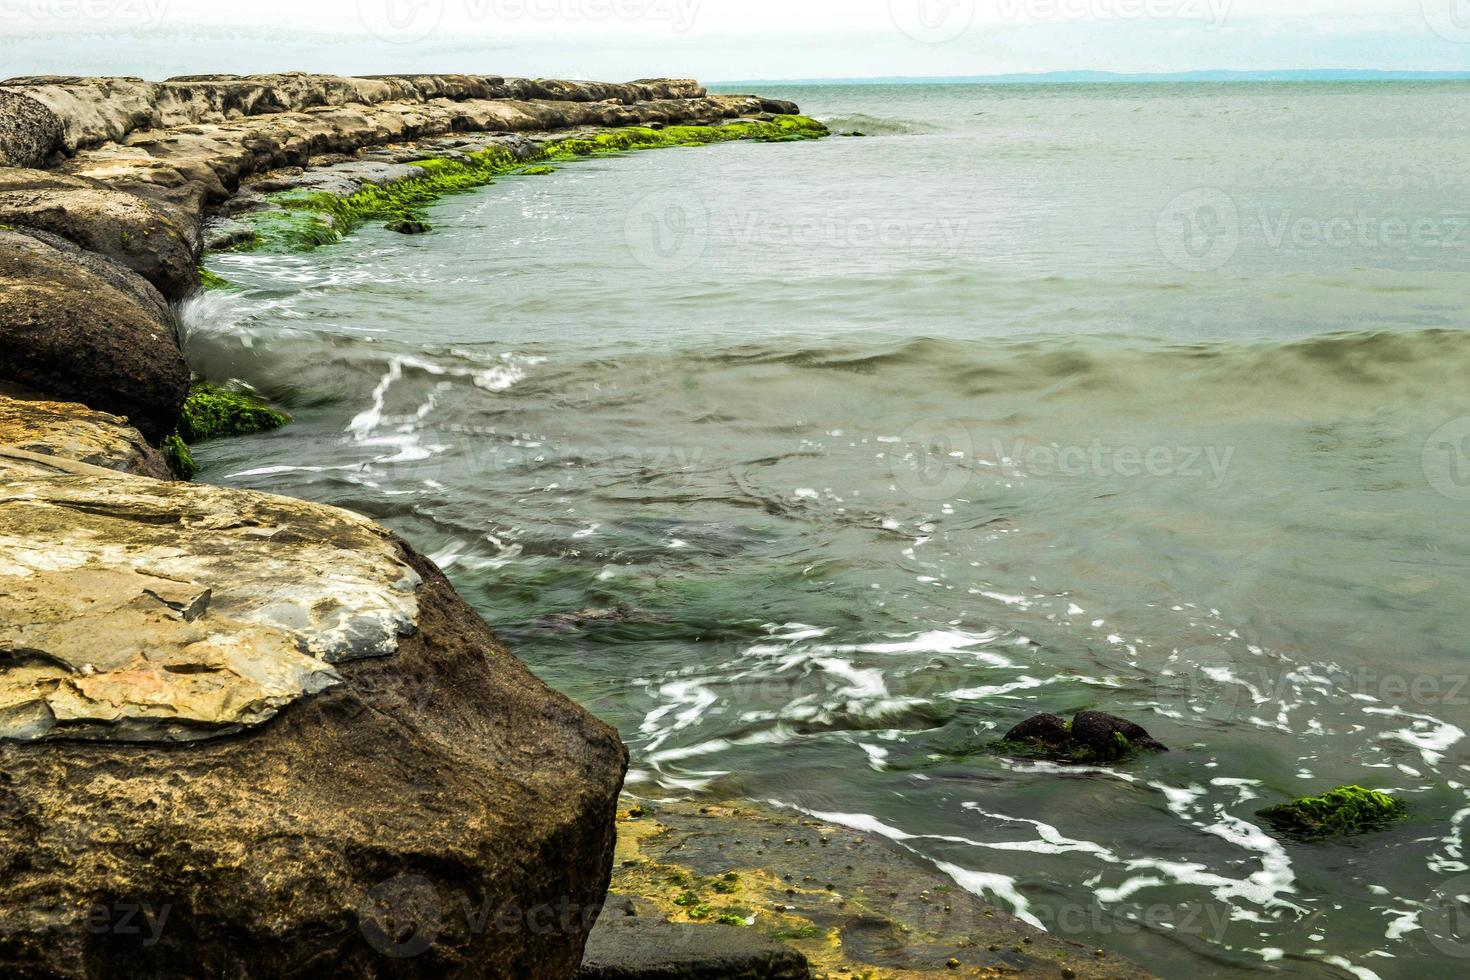 Breakwater Beach Boca del Rio Veracruz photo